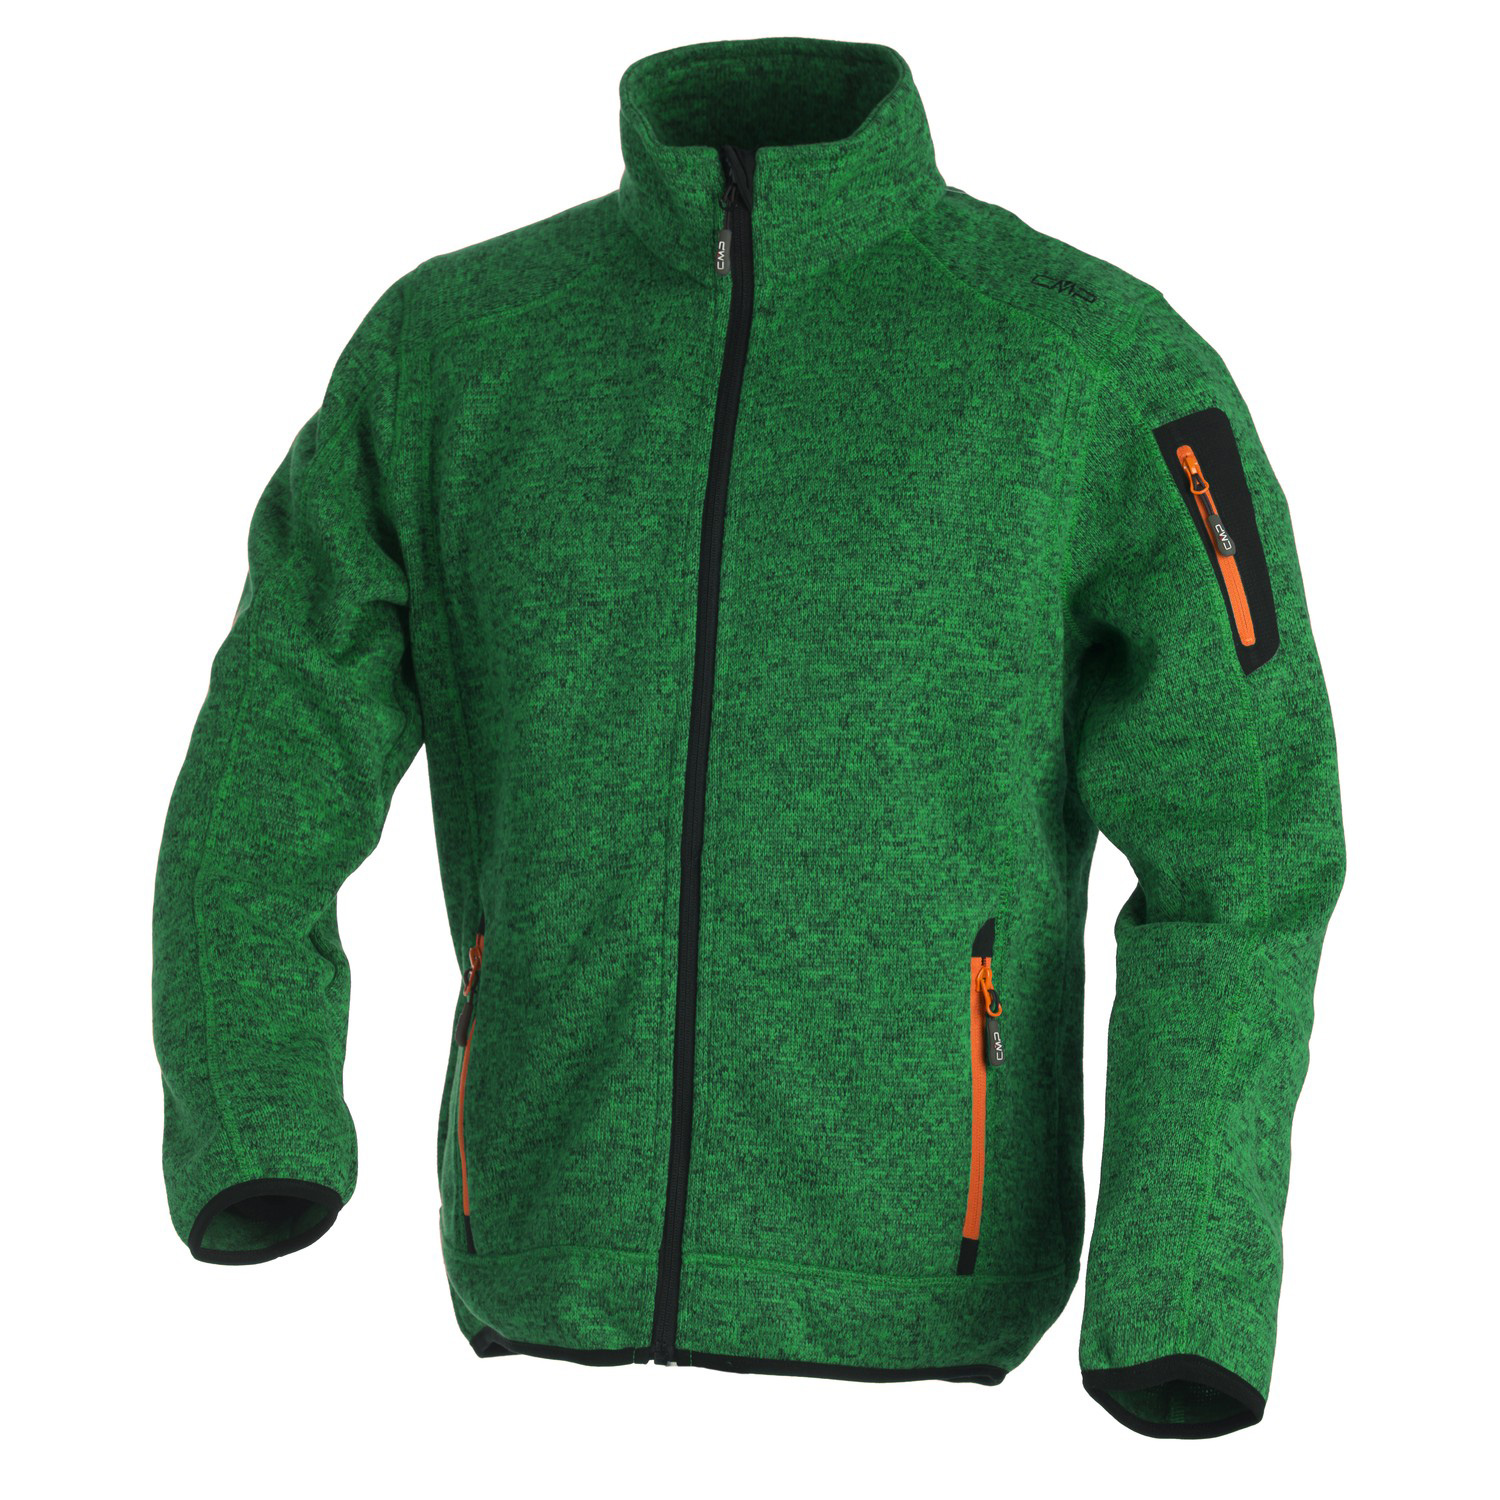 Kinder Fleecejacke BOY FLEECE JACKET